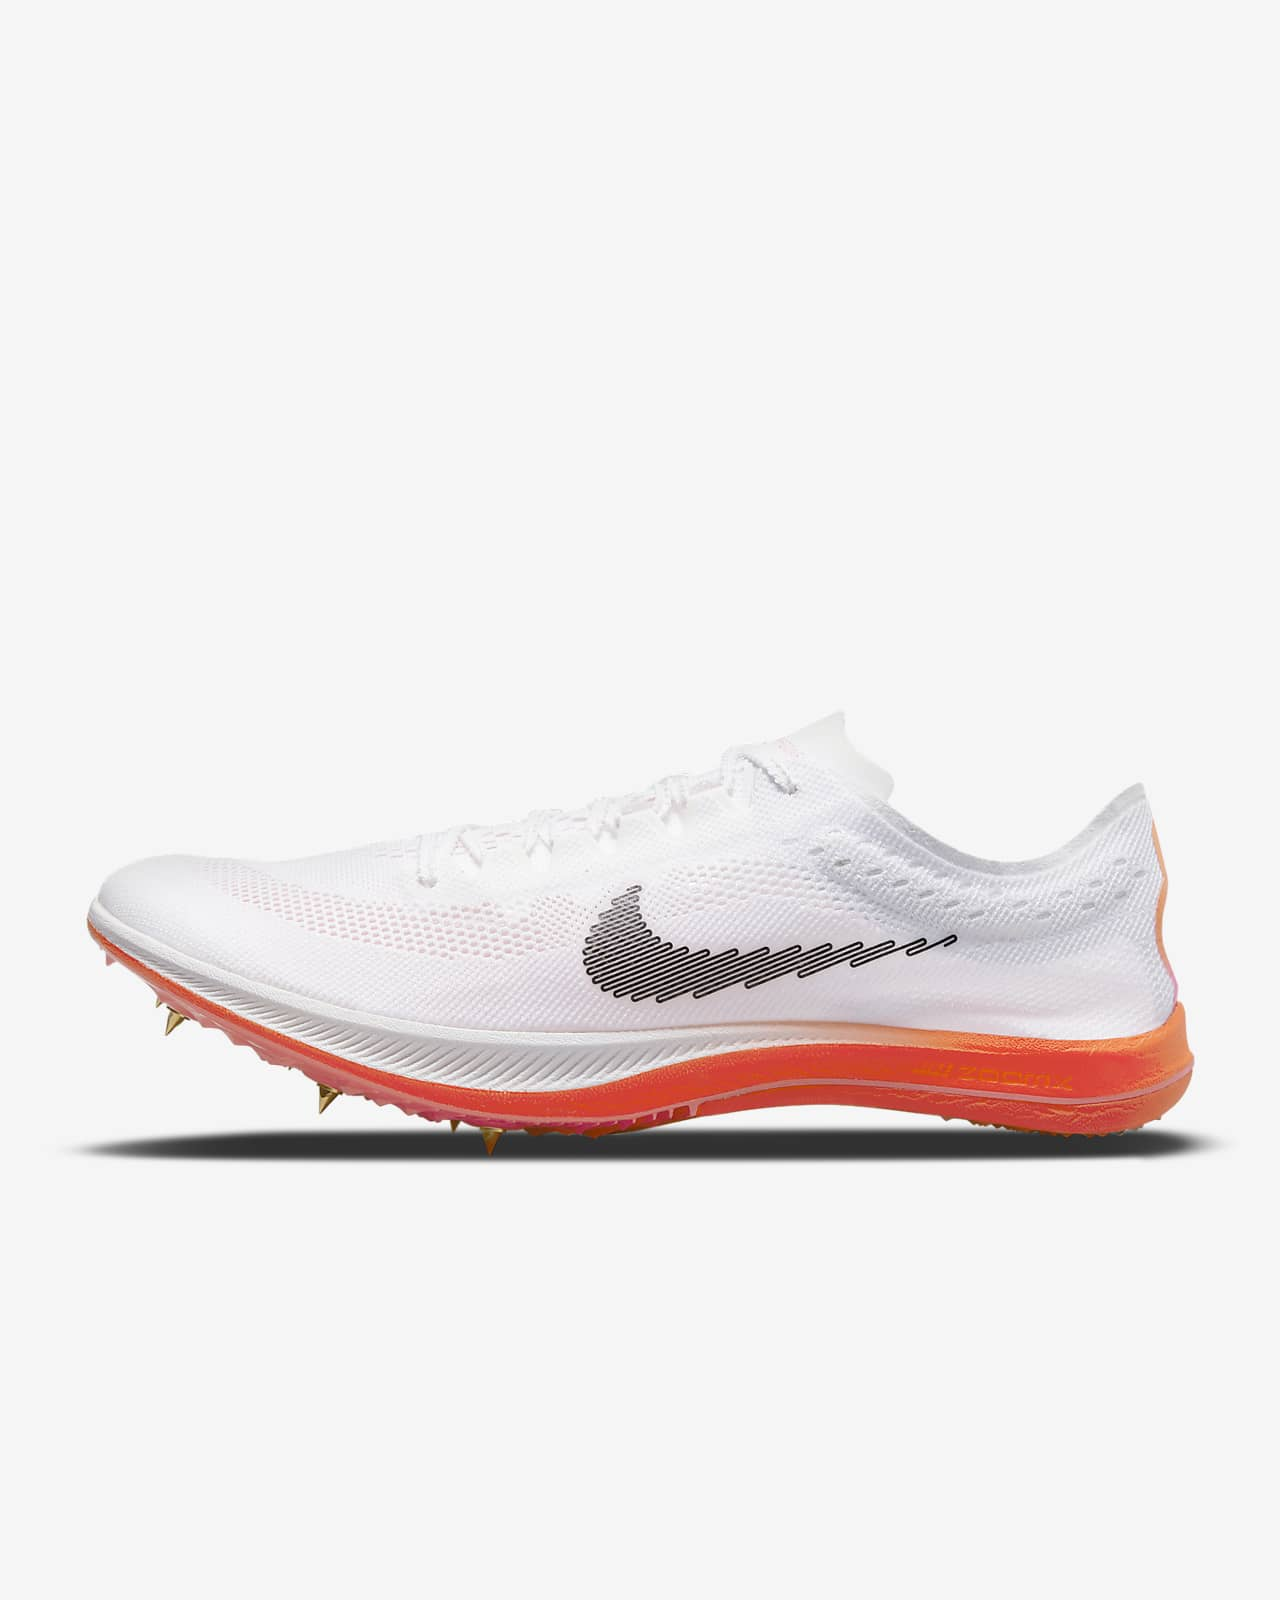 Nike ZoomX Dragonfly Racing Spike